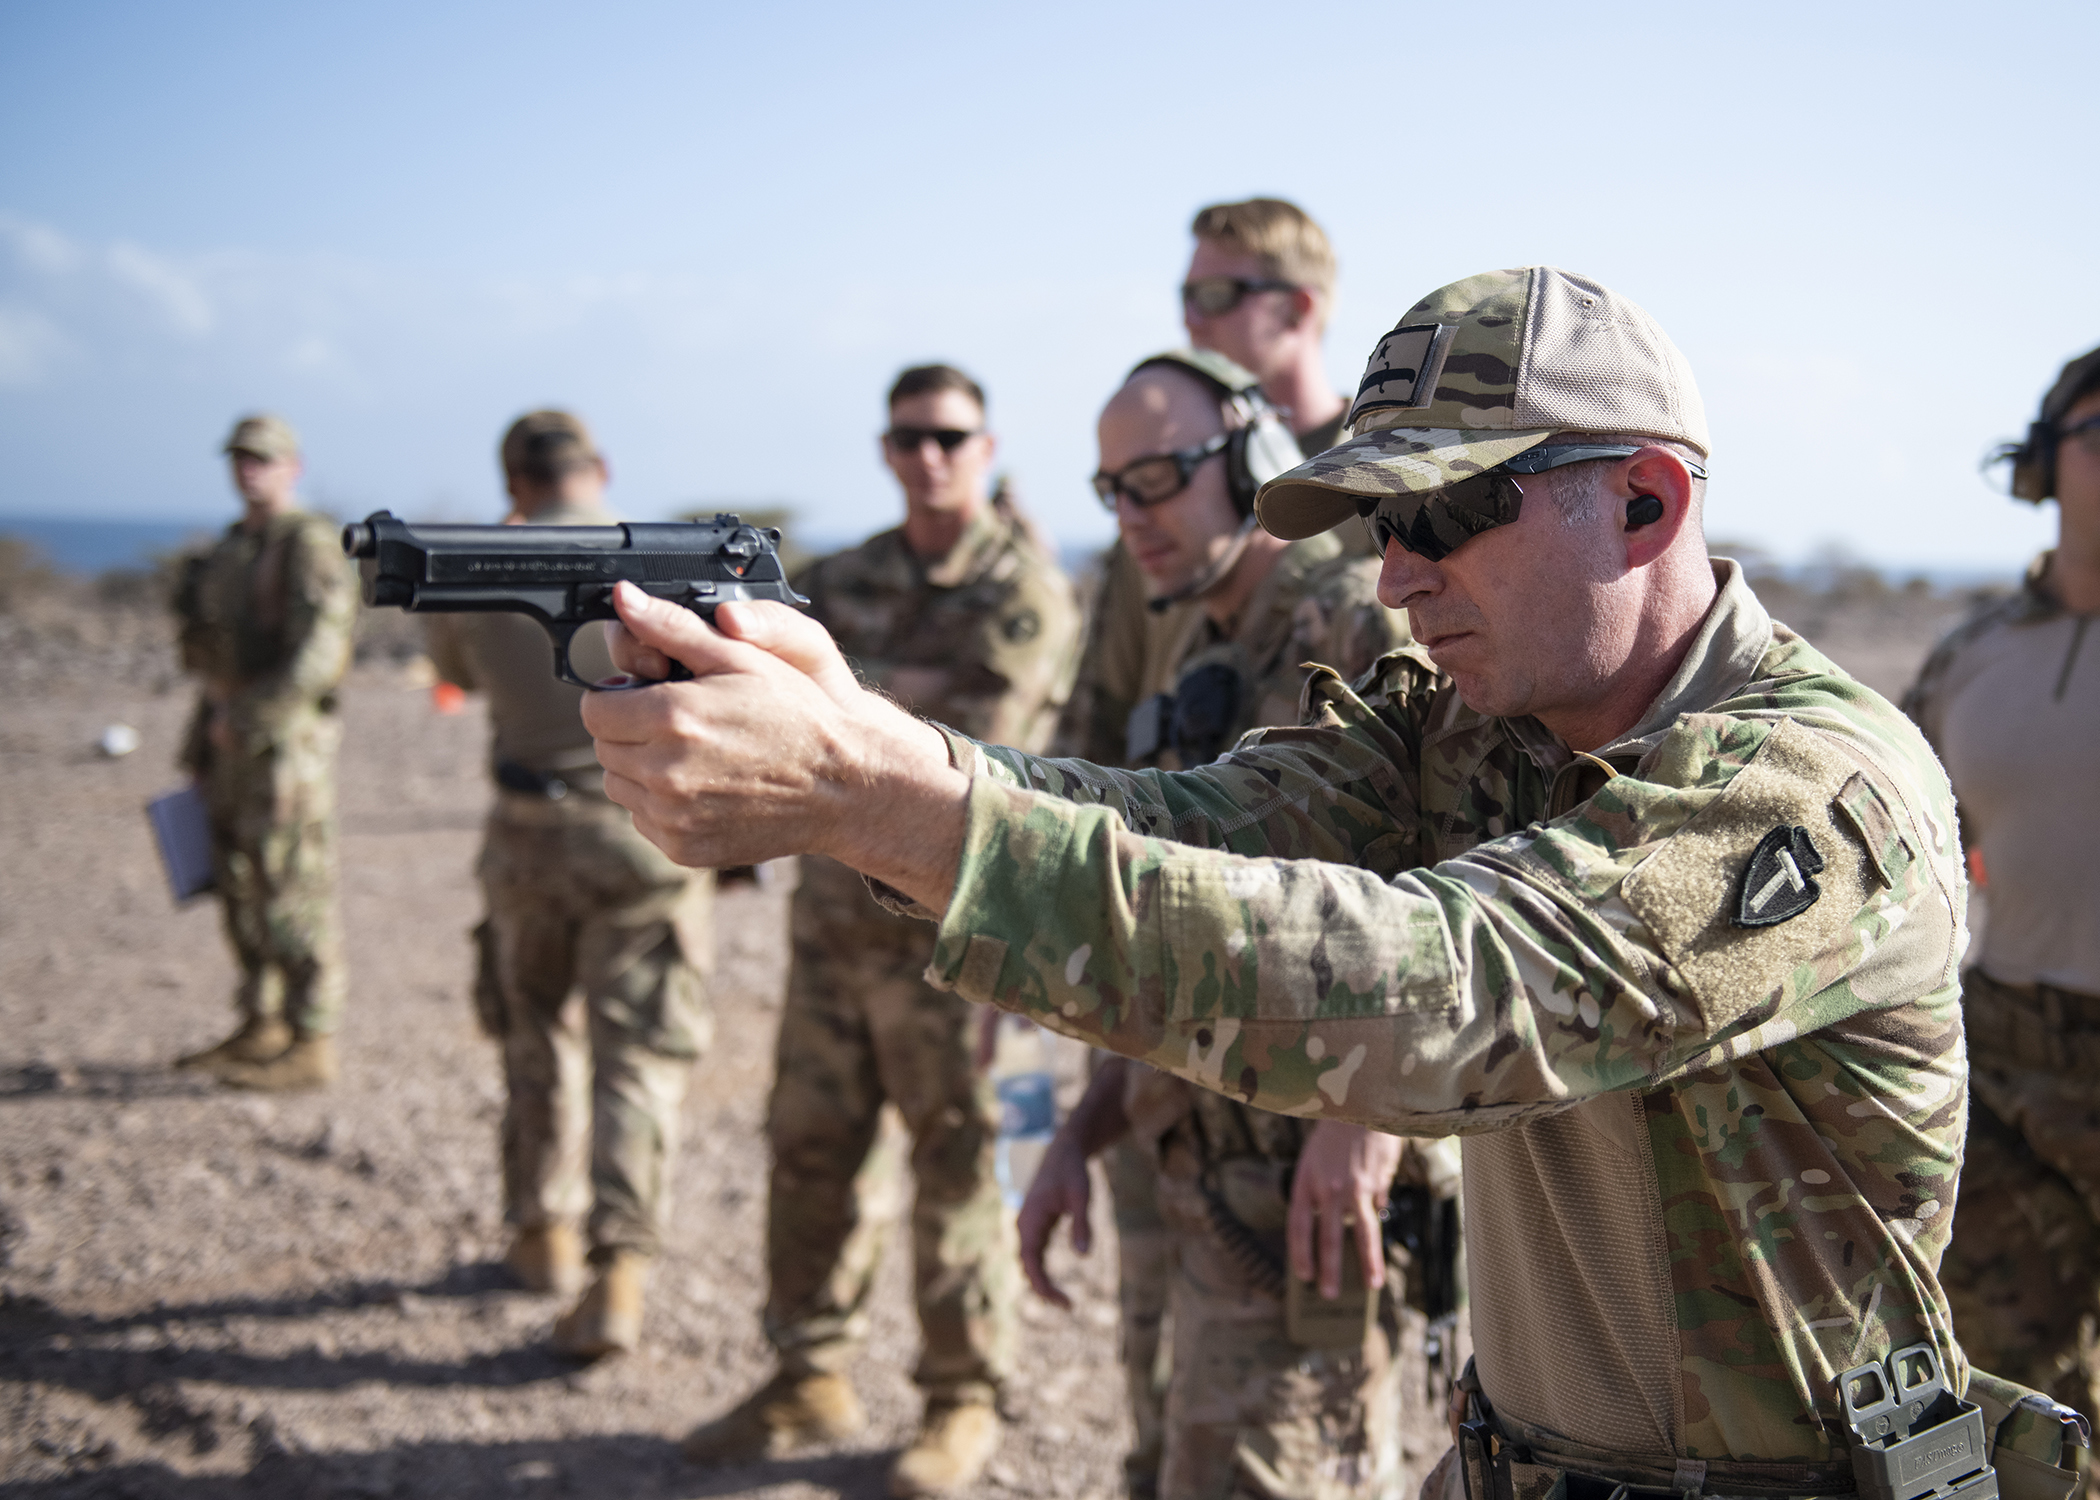 U.S. Army 1st Sgt. Jack Lamb, Bravo Company, 1-141 Infantry Regiment, Task Force Alamo, Texas National Guard, assigned to Combined Joint Task Force-Horn of Africa, practices before the official marksmanship portion of the German Armed Forces Badge for military proficiency at the Arta Range Complex, Djibouti, Jan. 17, 2019. Competing for the badge offered a unique opportunity to Soldiers and worked as an information exchange between the U.S. and Germany militaries. (U.S. Air Force photo by Tech. Sgt. Shawn Nickel)